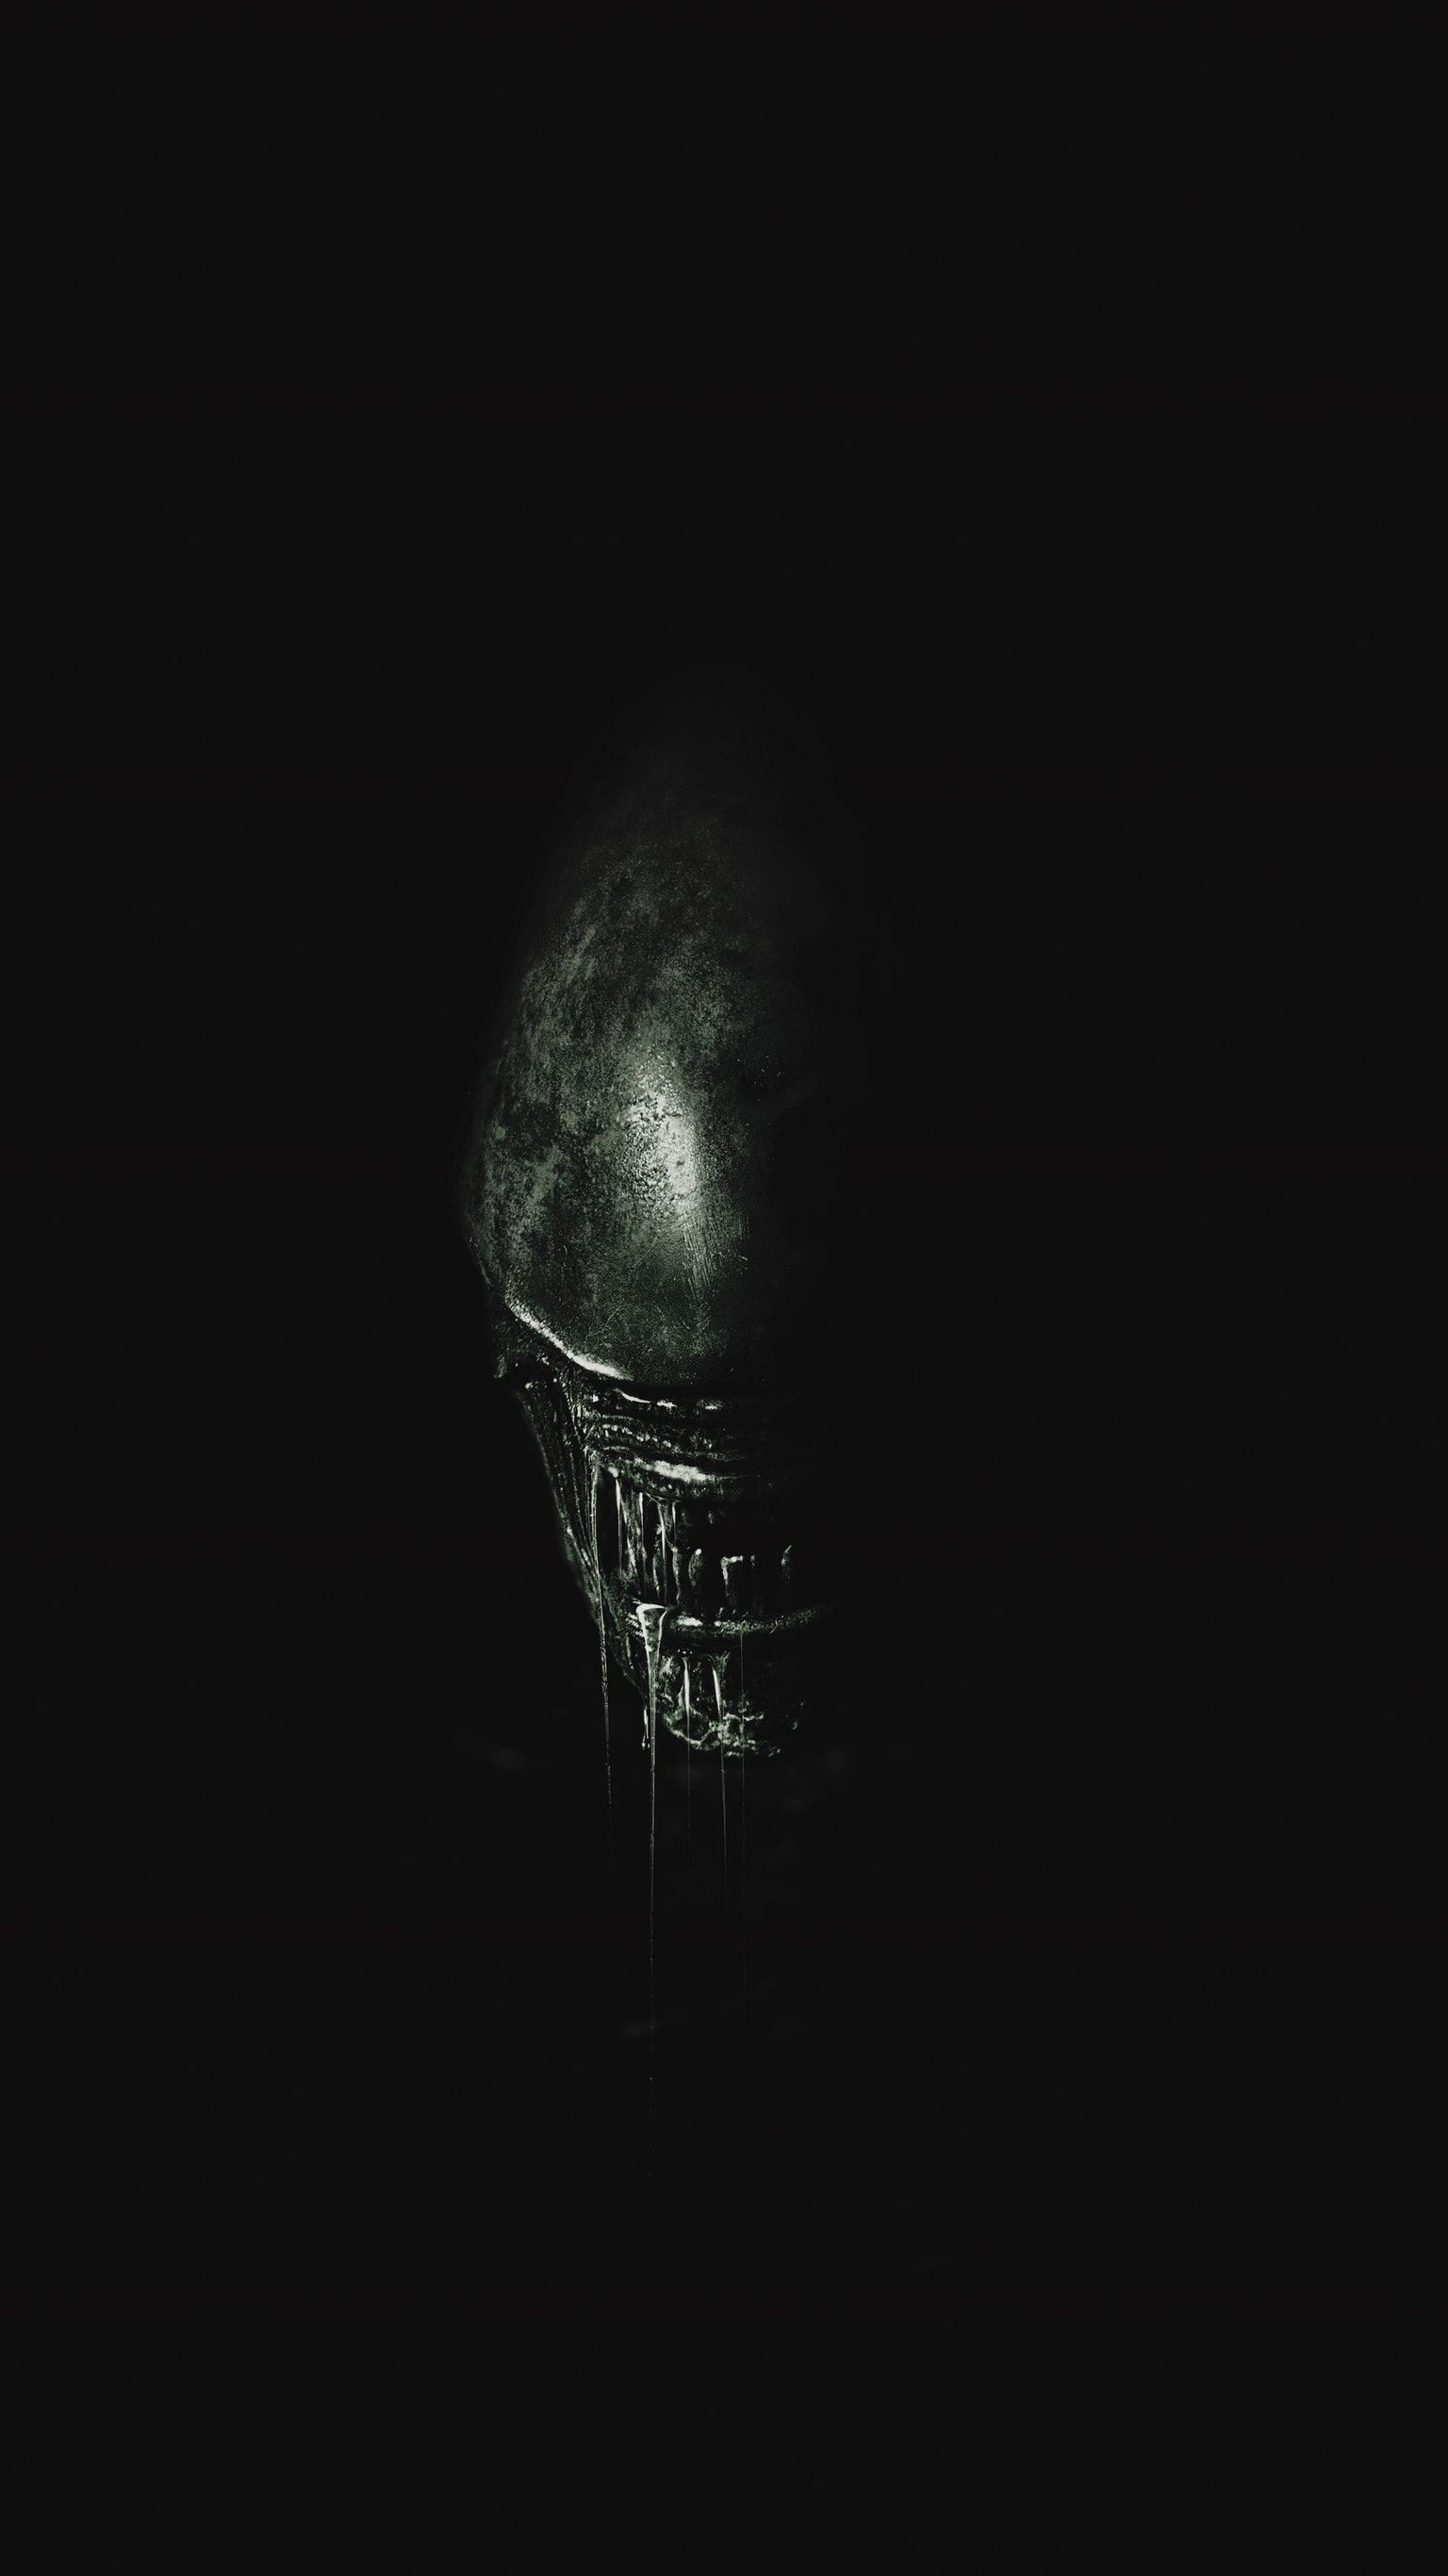 Free Download 62 Alien Movie Wallpapers On Wallpaperplay